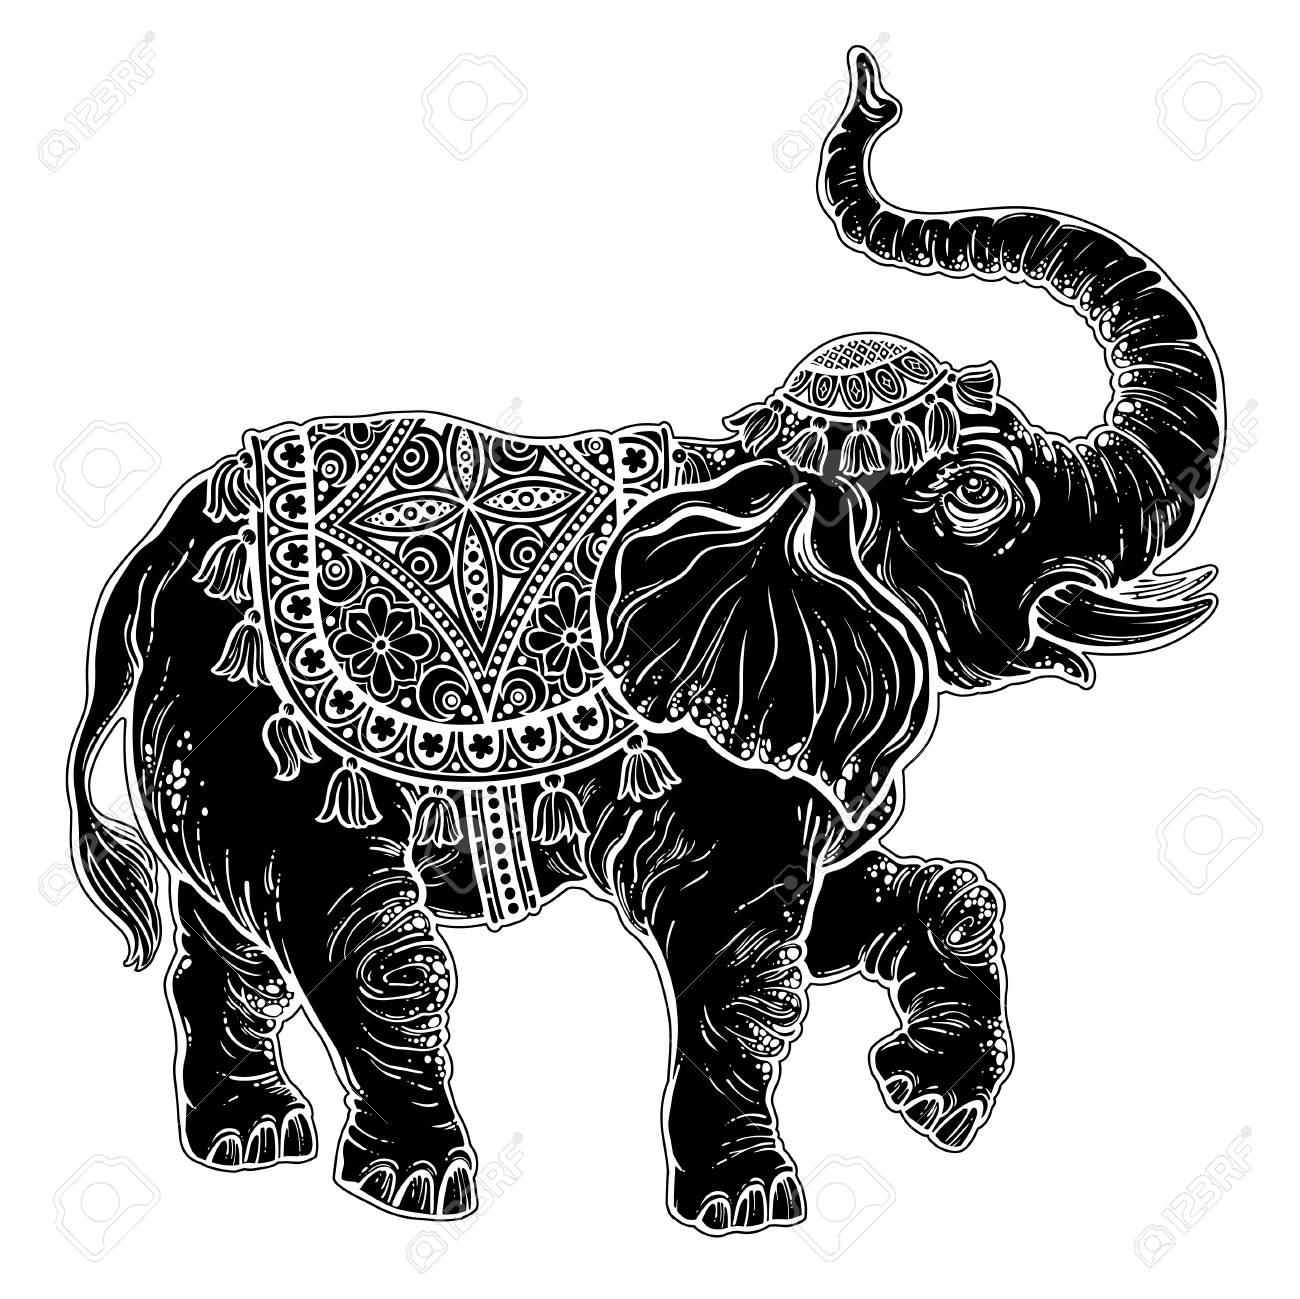 vintage indian ethnic dancing boho elephant royalty free cliparts